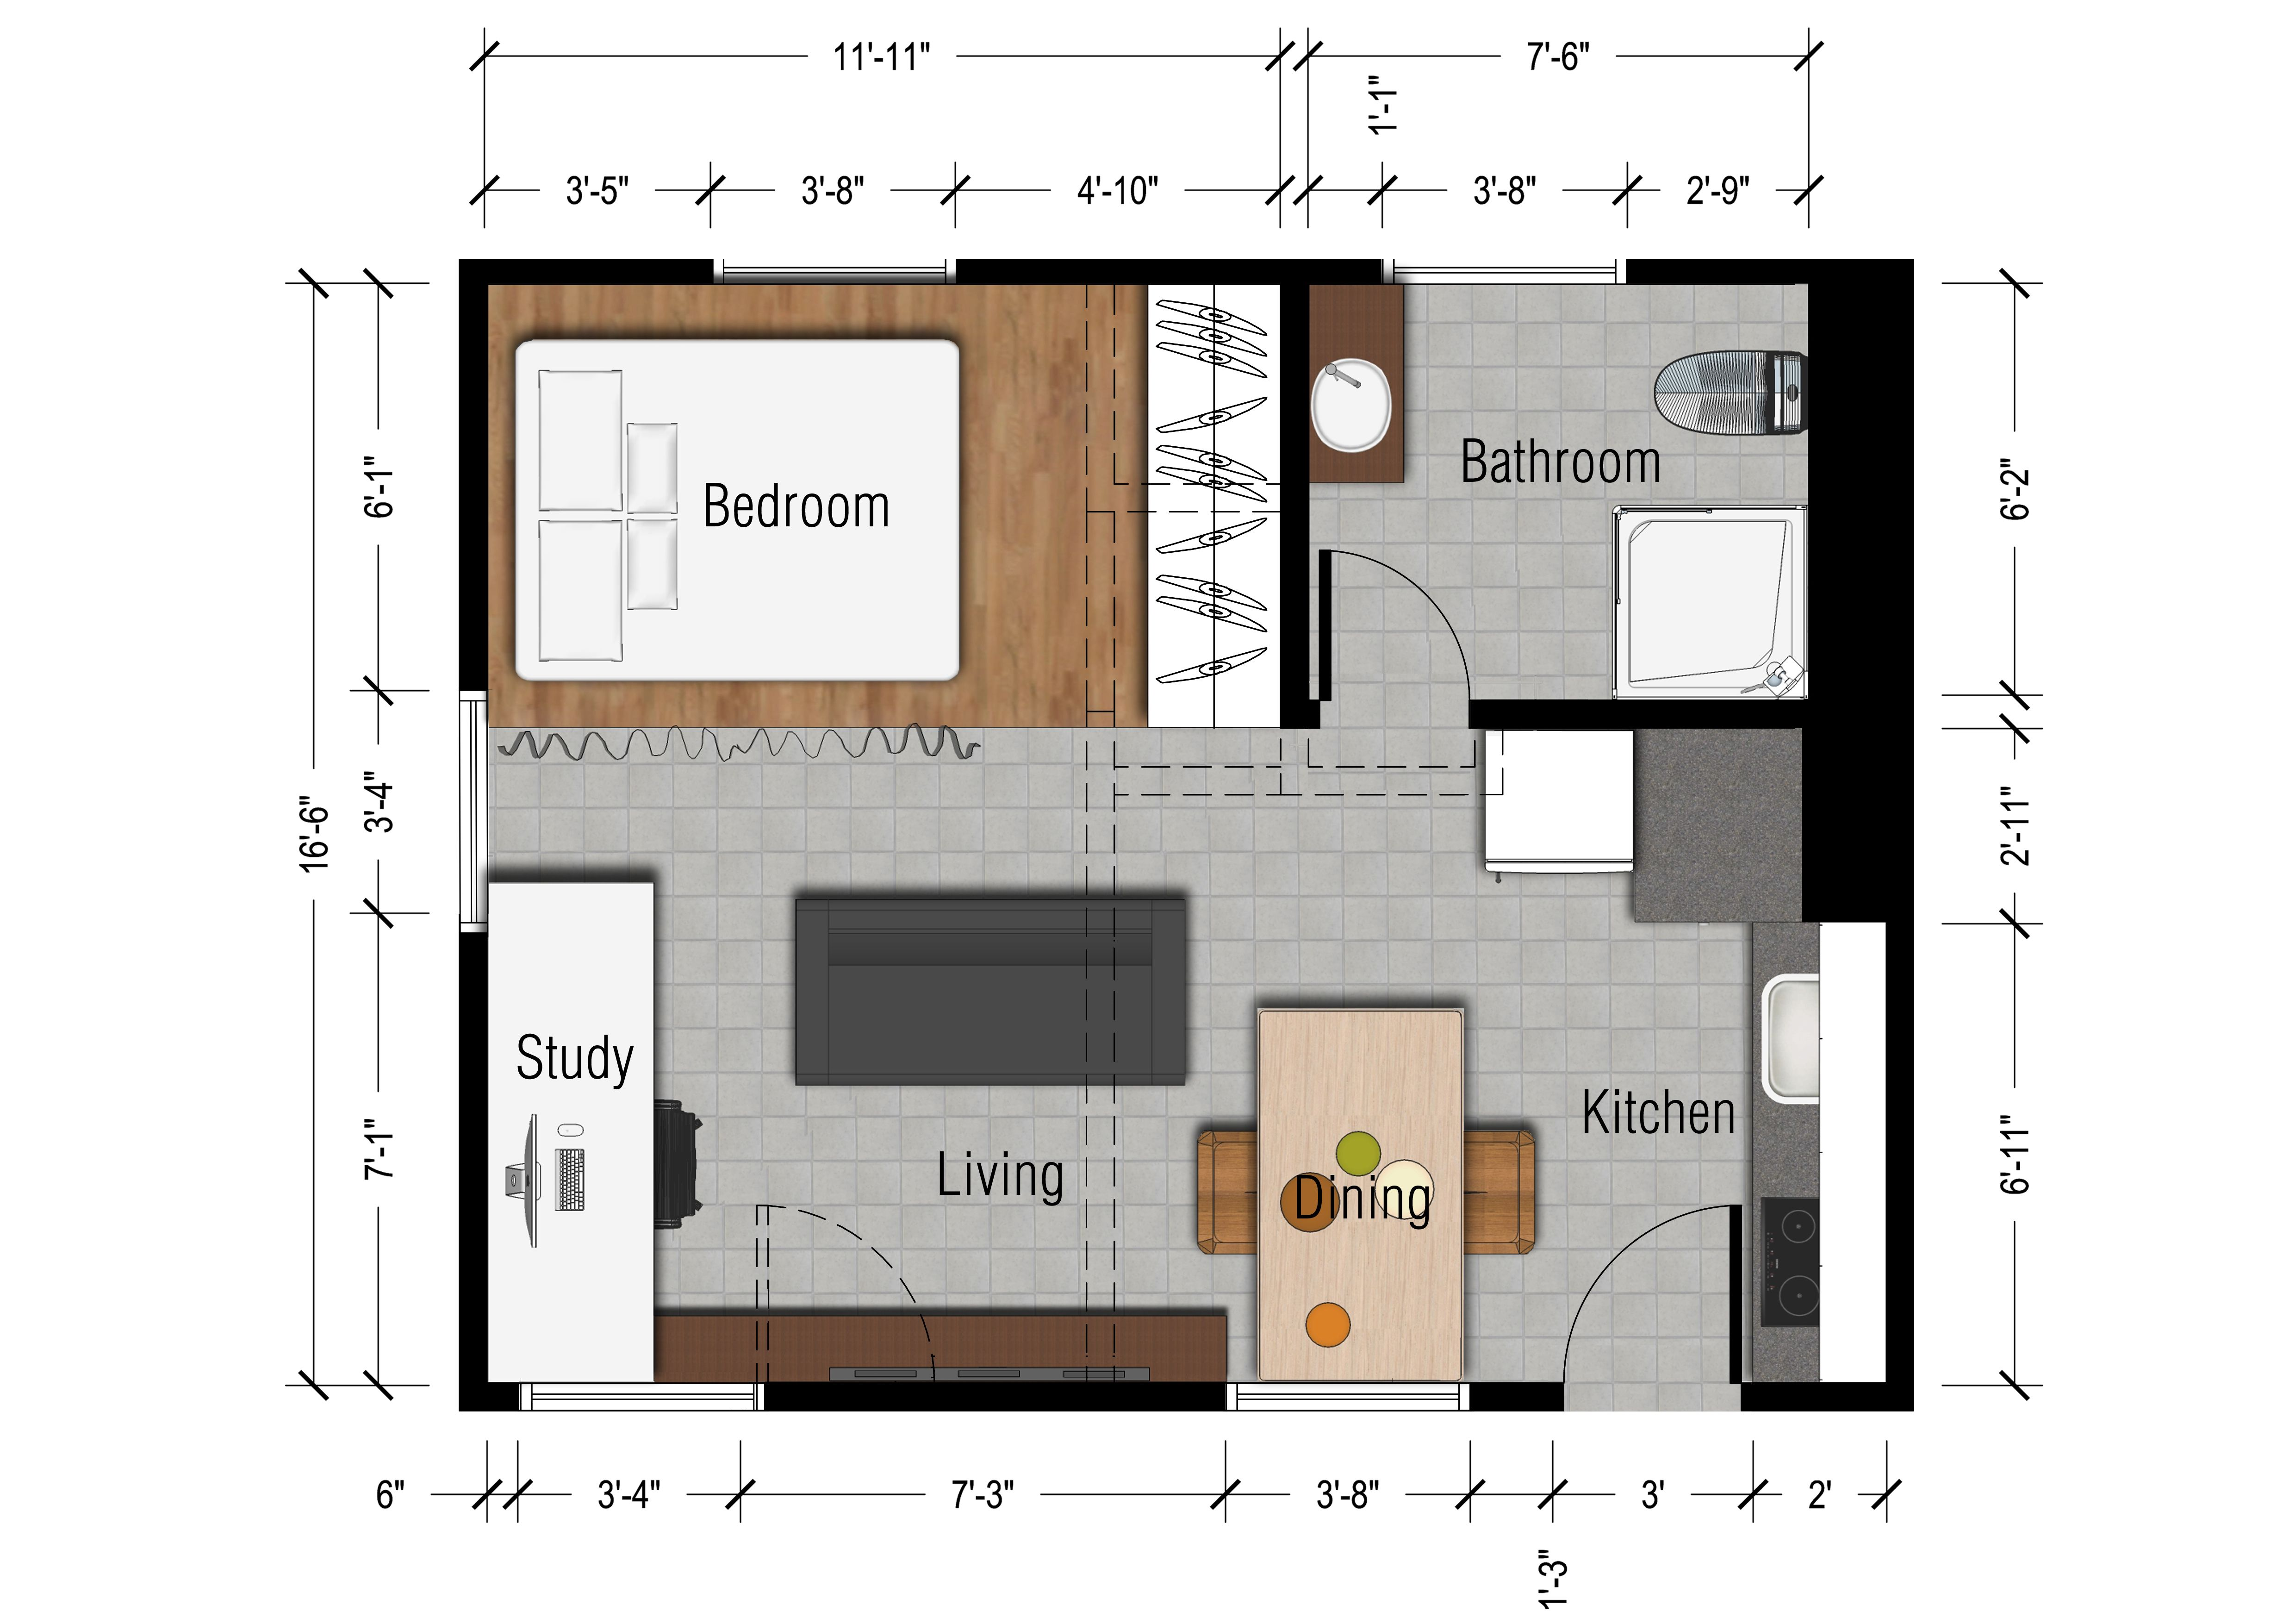 Small Apartment Plans 2 Bedroom Great One Bedroom Apartment Plans And Designs Awesome Simple Hou Small Apartment Plans Studio Apartment Plan Studio Floor Plans